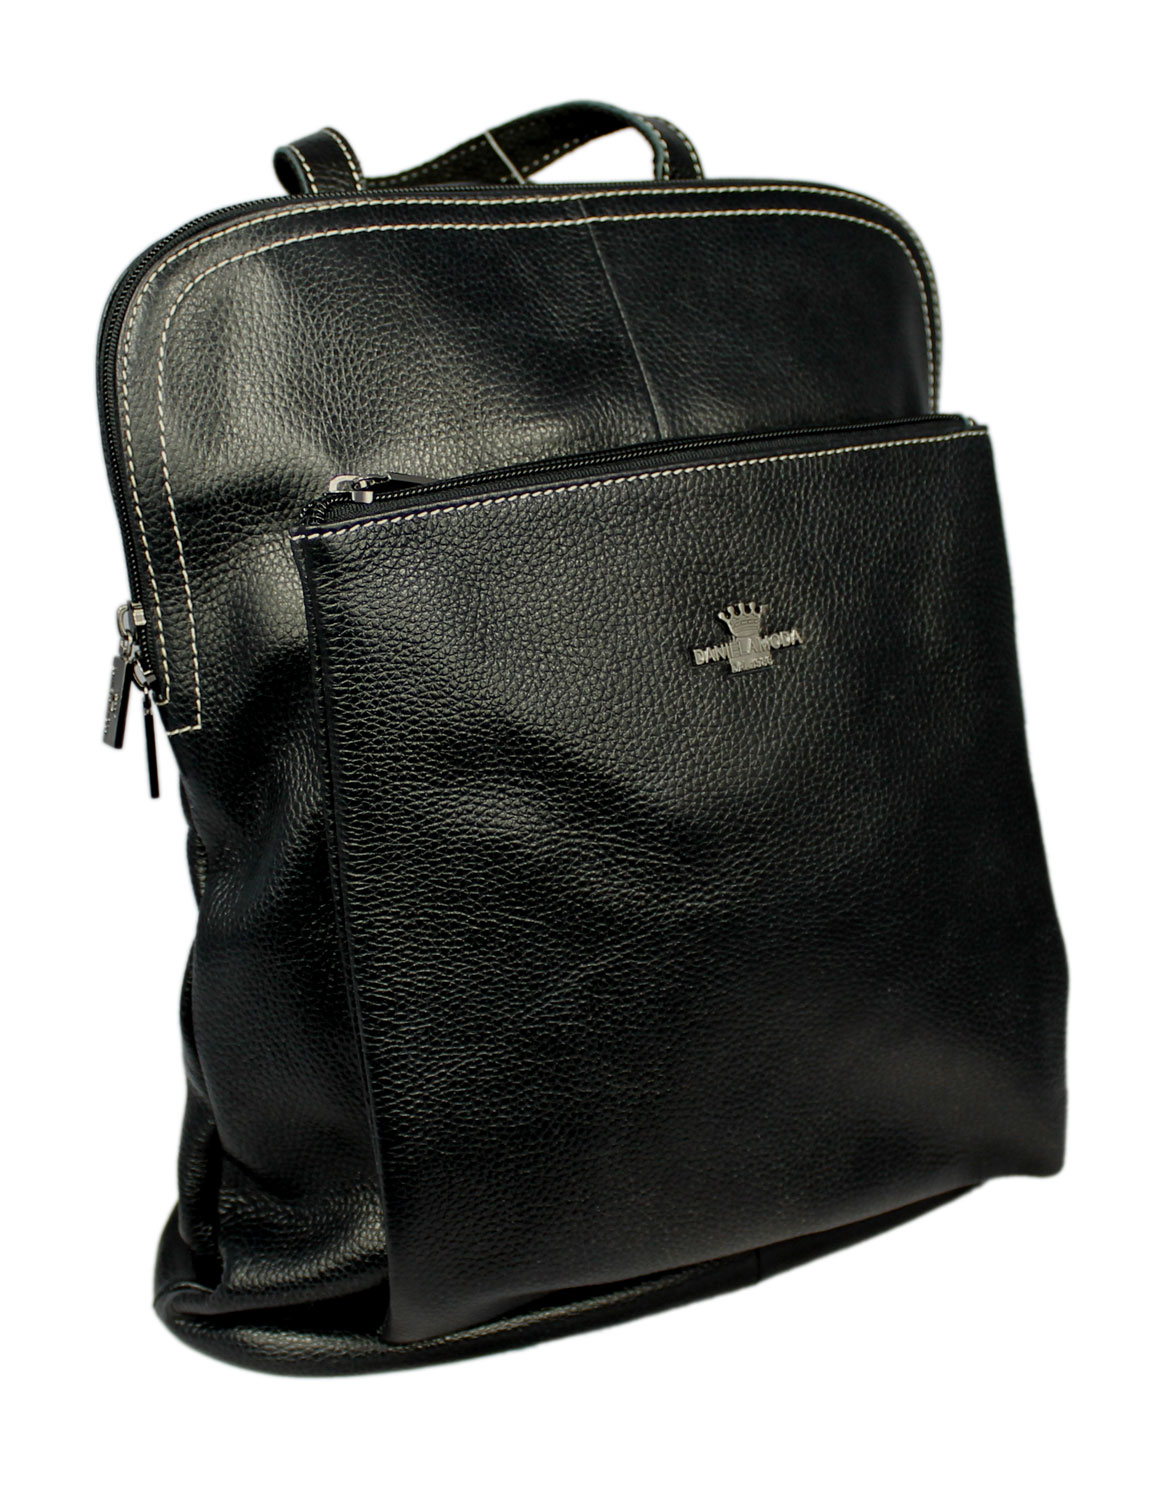 Florence Soft Leather Rucksack in Black